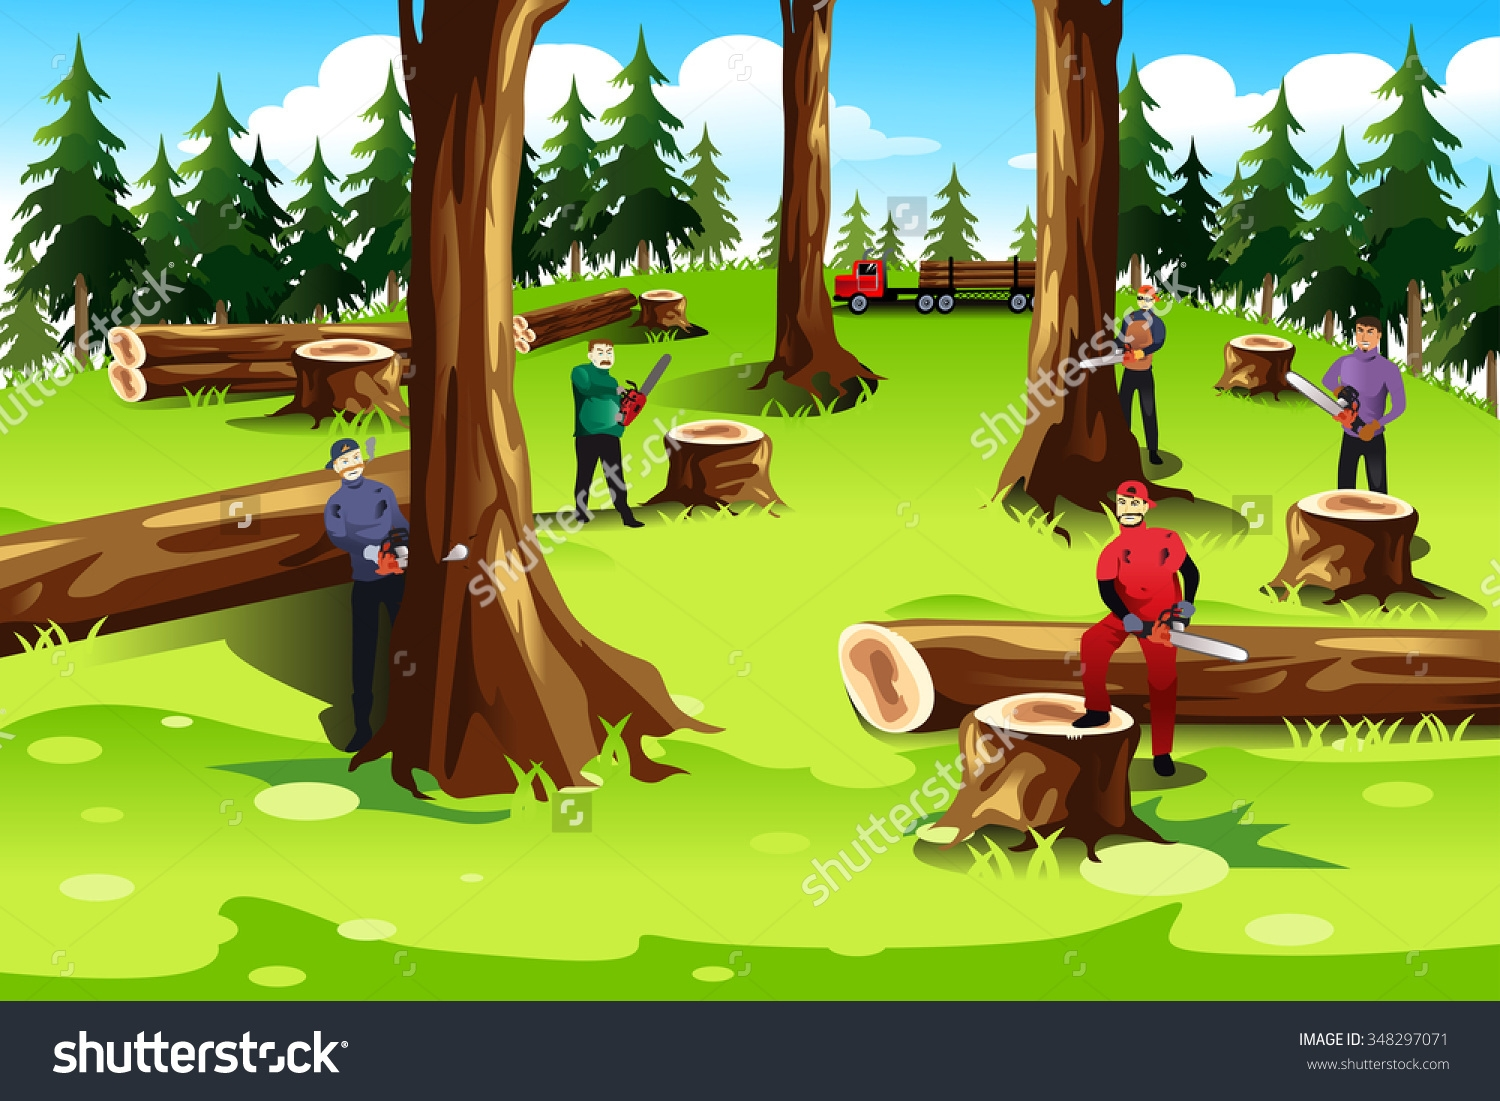 Clipart tree cutting.